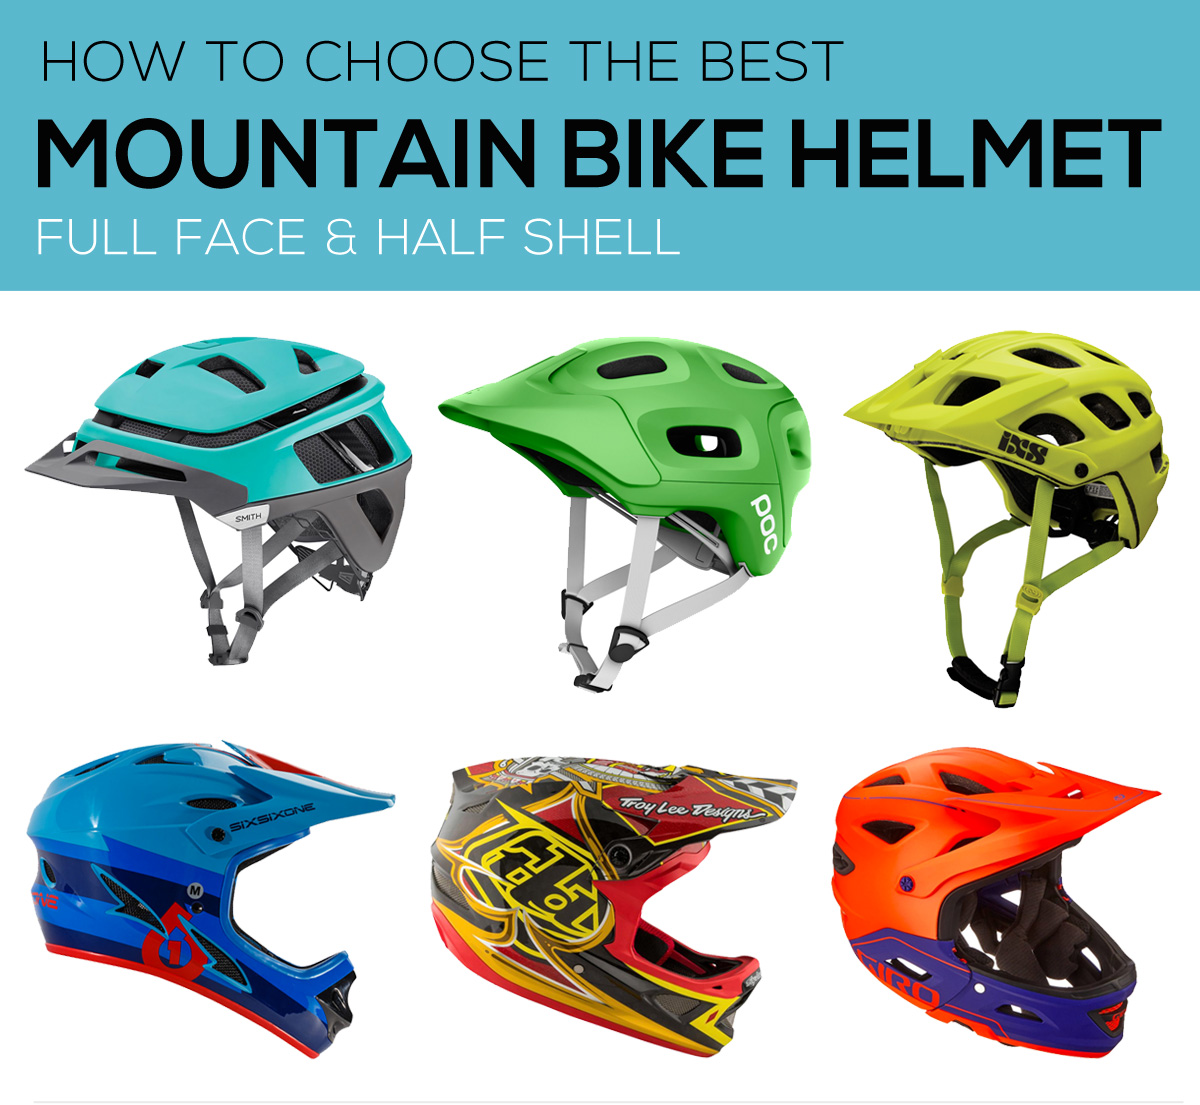 How to choose the best mountain bike helmet